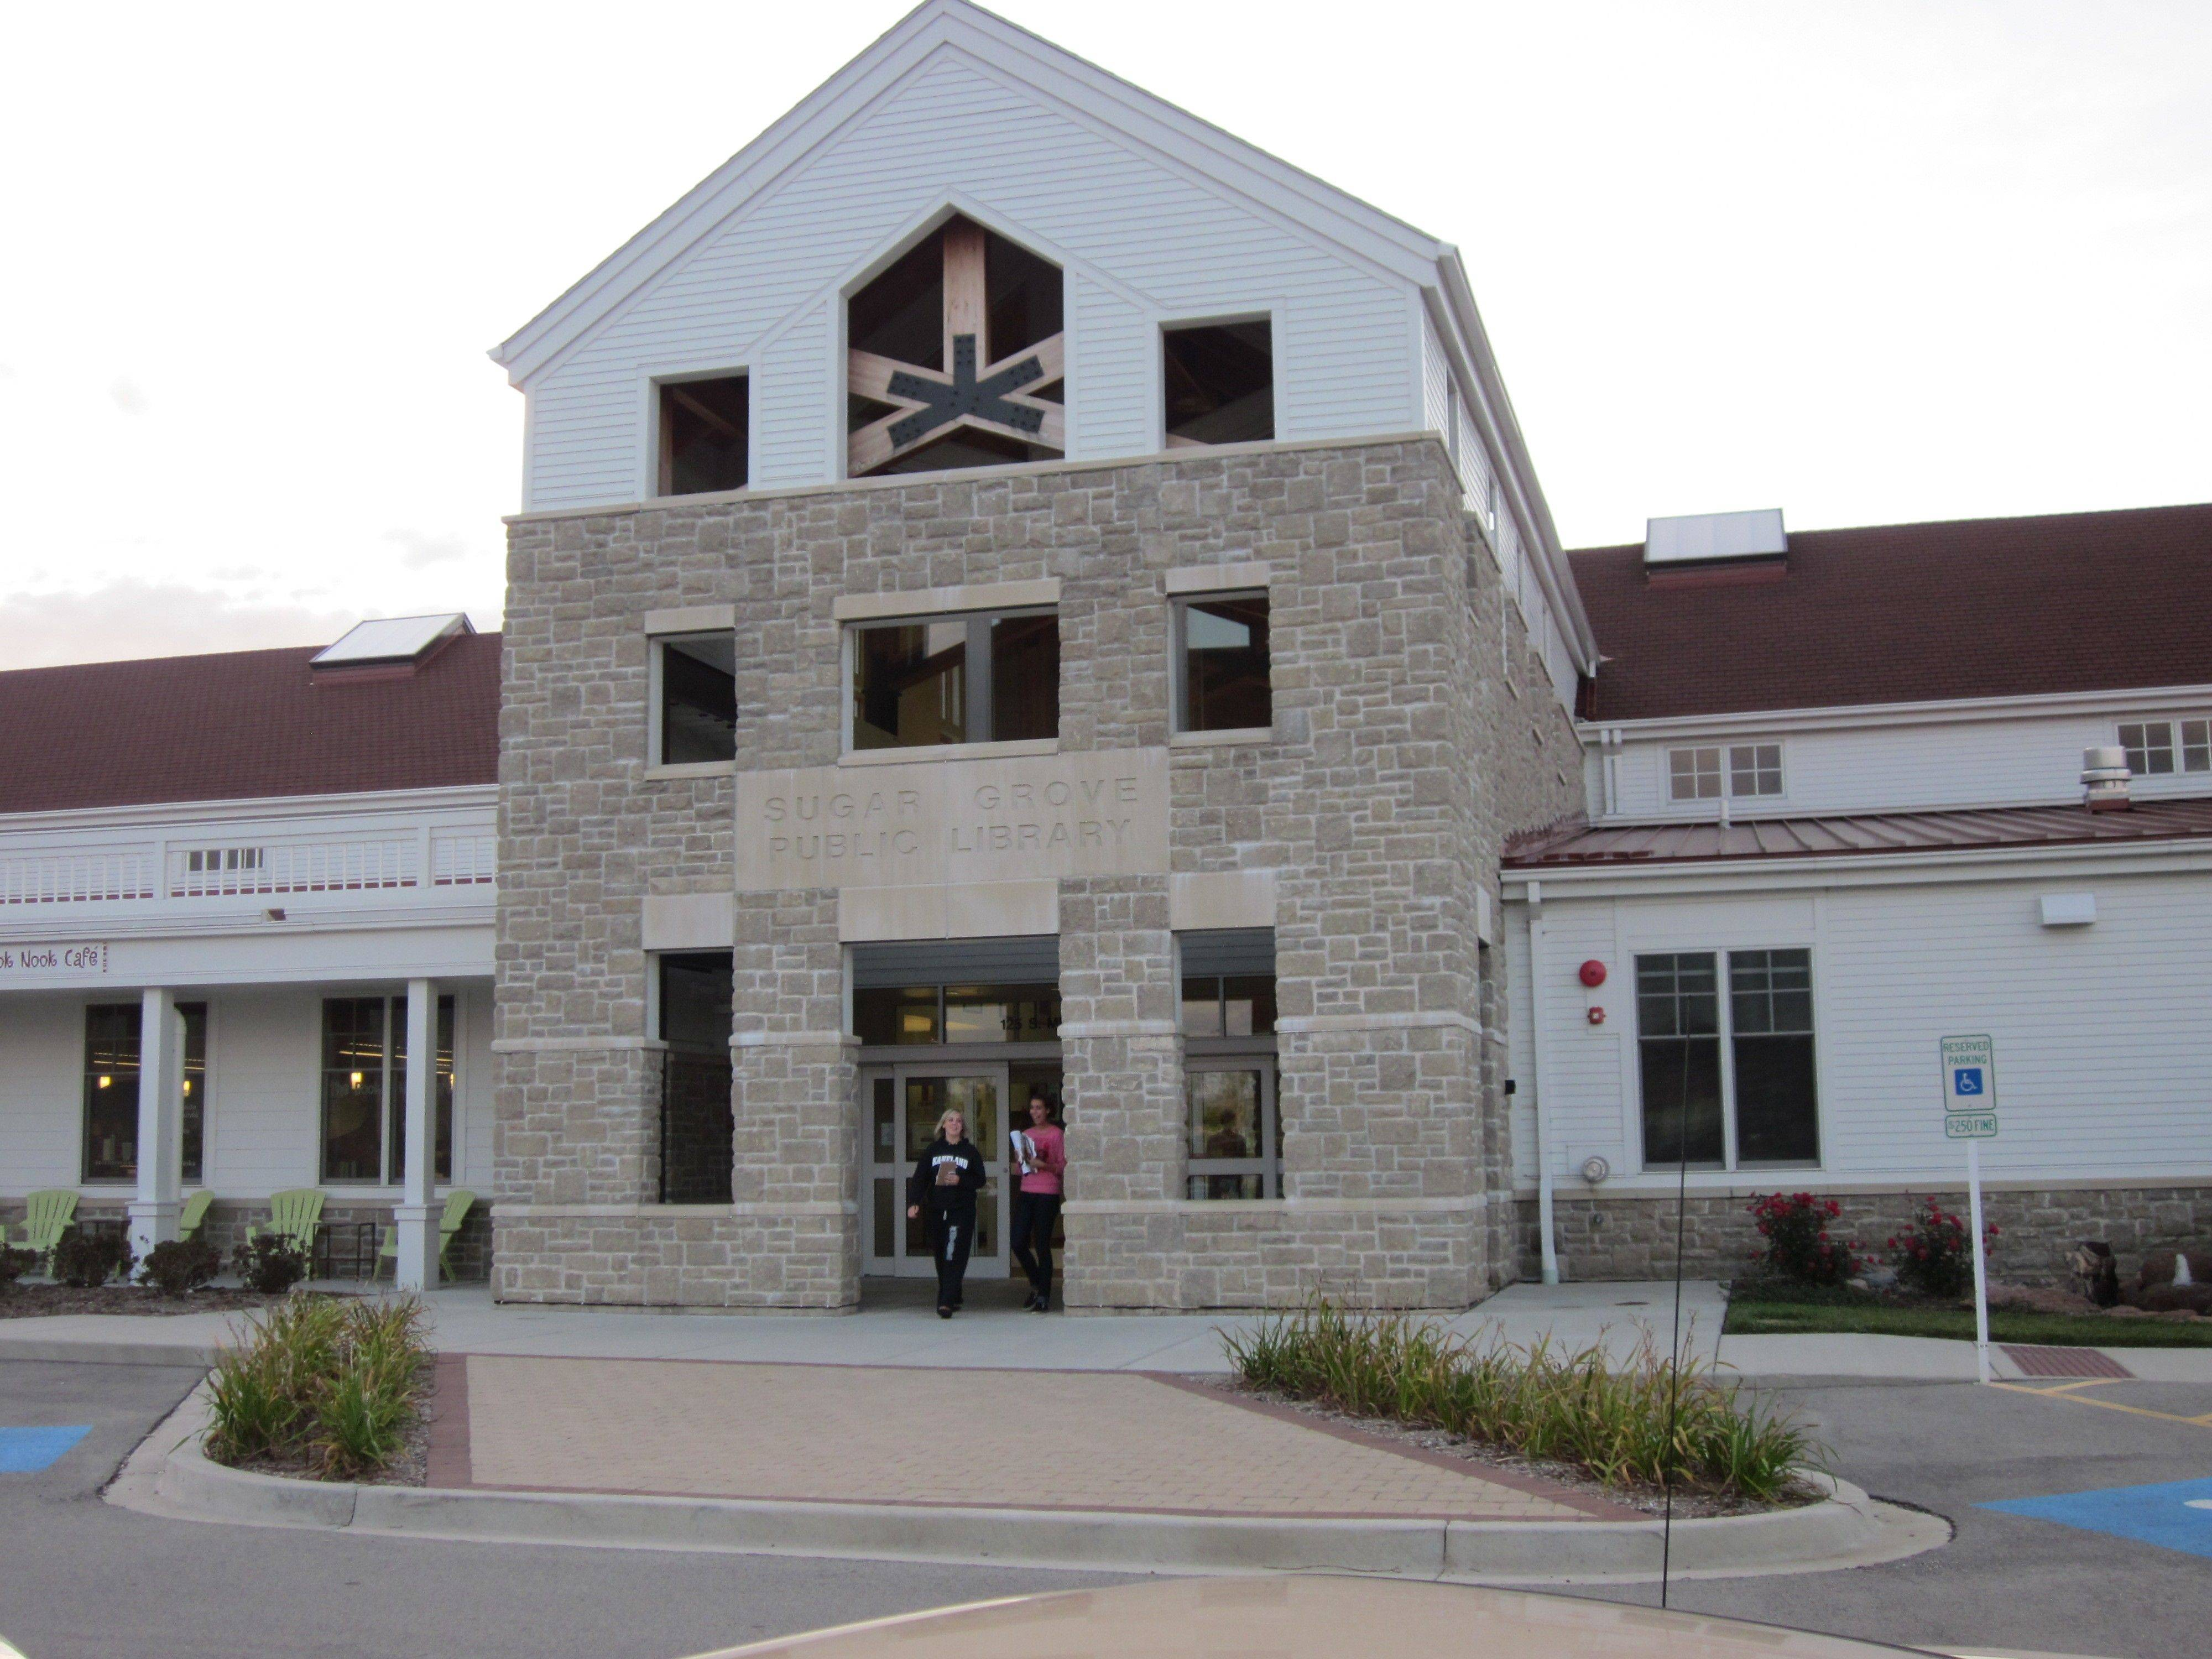 Trustees adopted the 2011-12 budget Thursday for the Sugar Grove library, though they don't know if it's realistic at all yet.